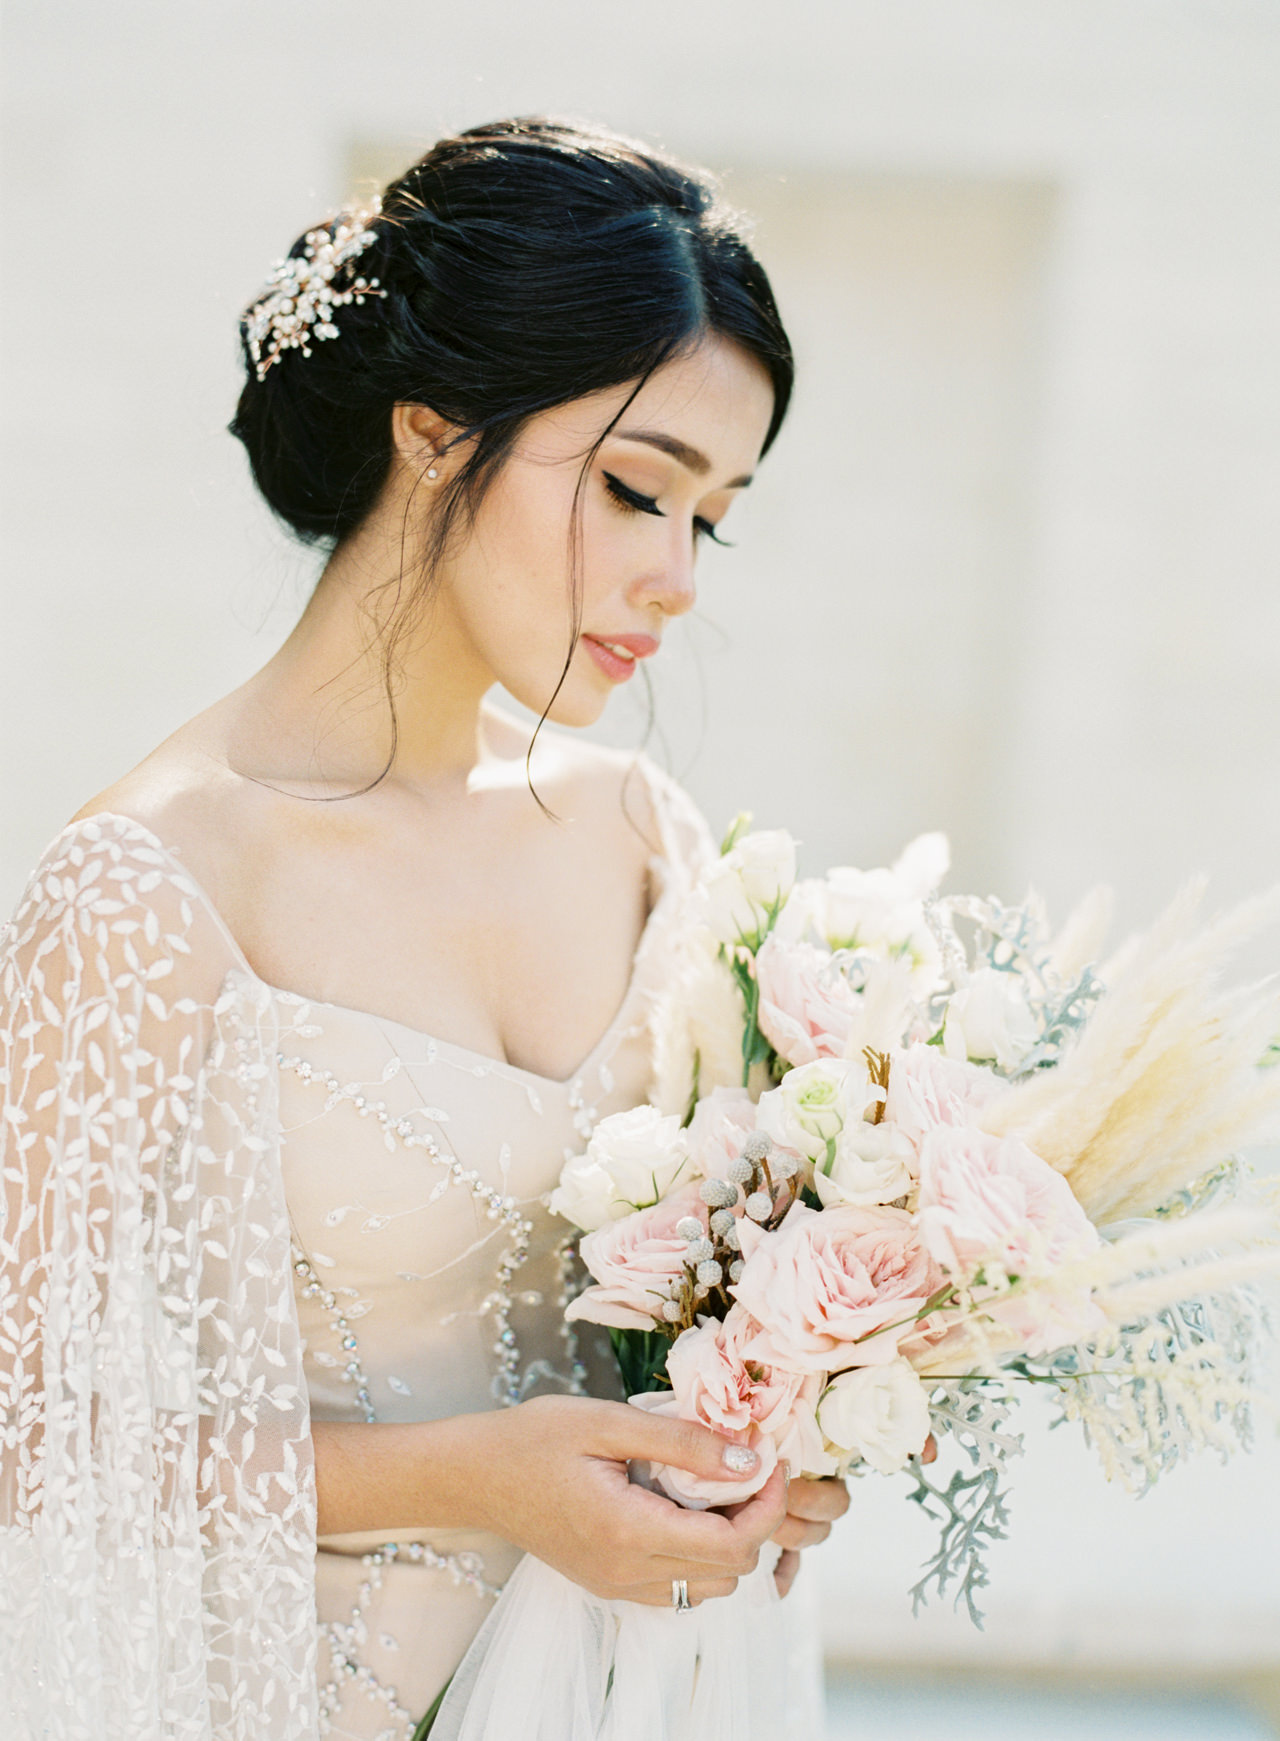 Bali Wedding of Ana Octarina and Adie Baron 10